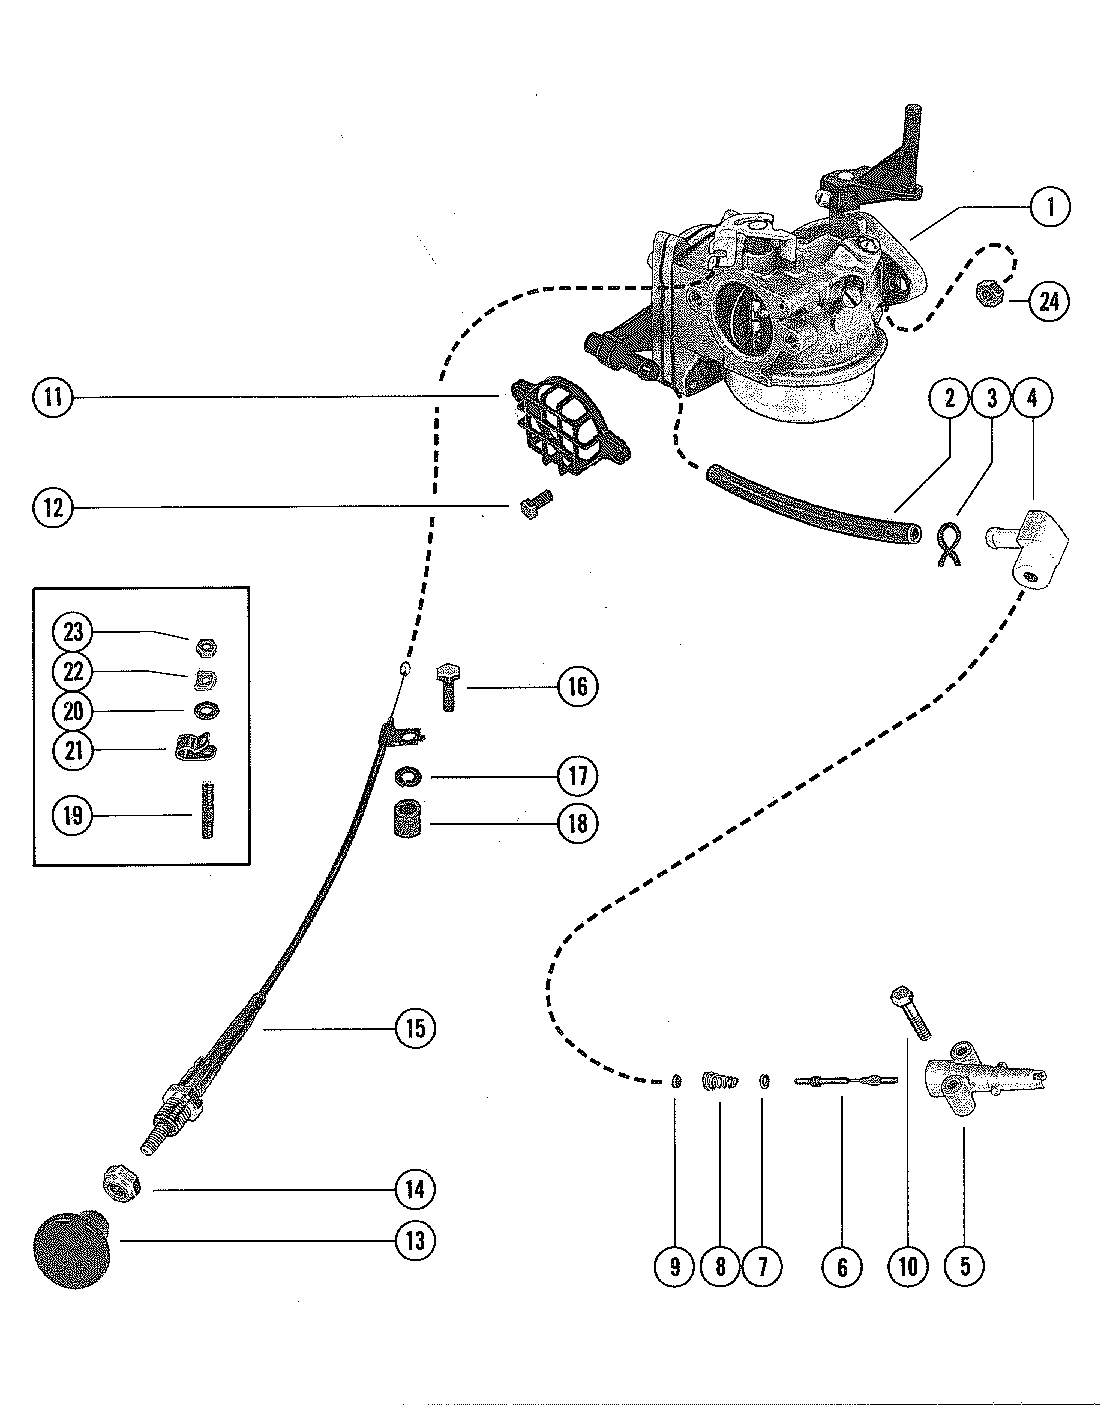 yamaha 8 hp outboard wiring diagram carburetor and choke assembly for mercury merc 110